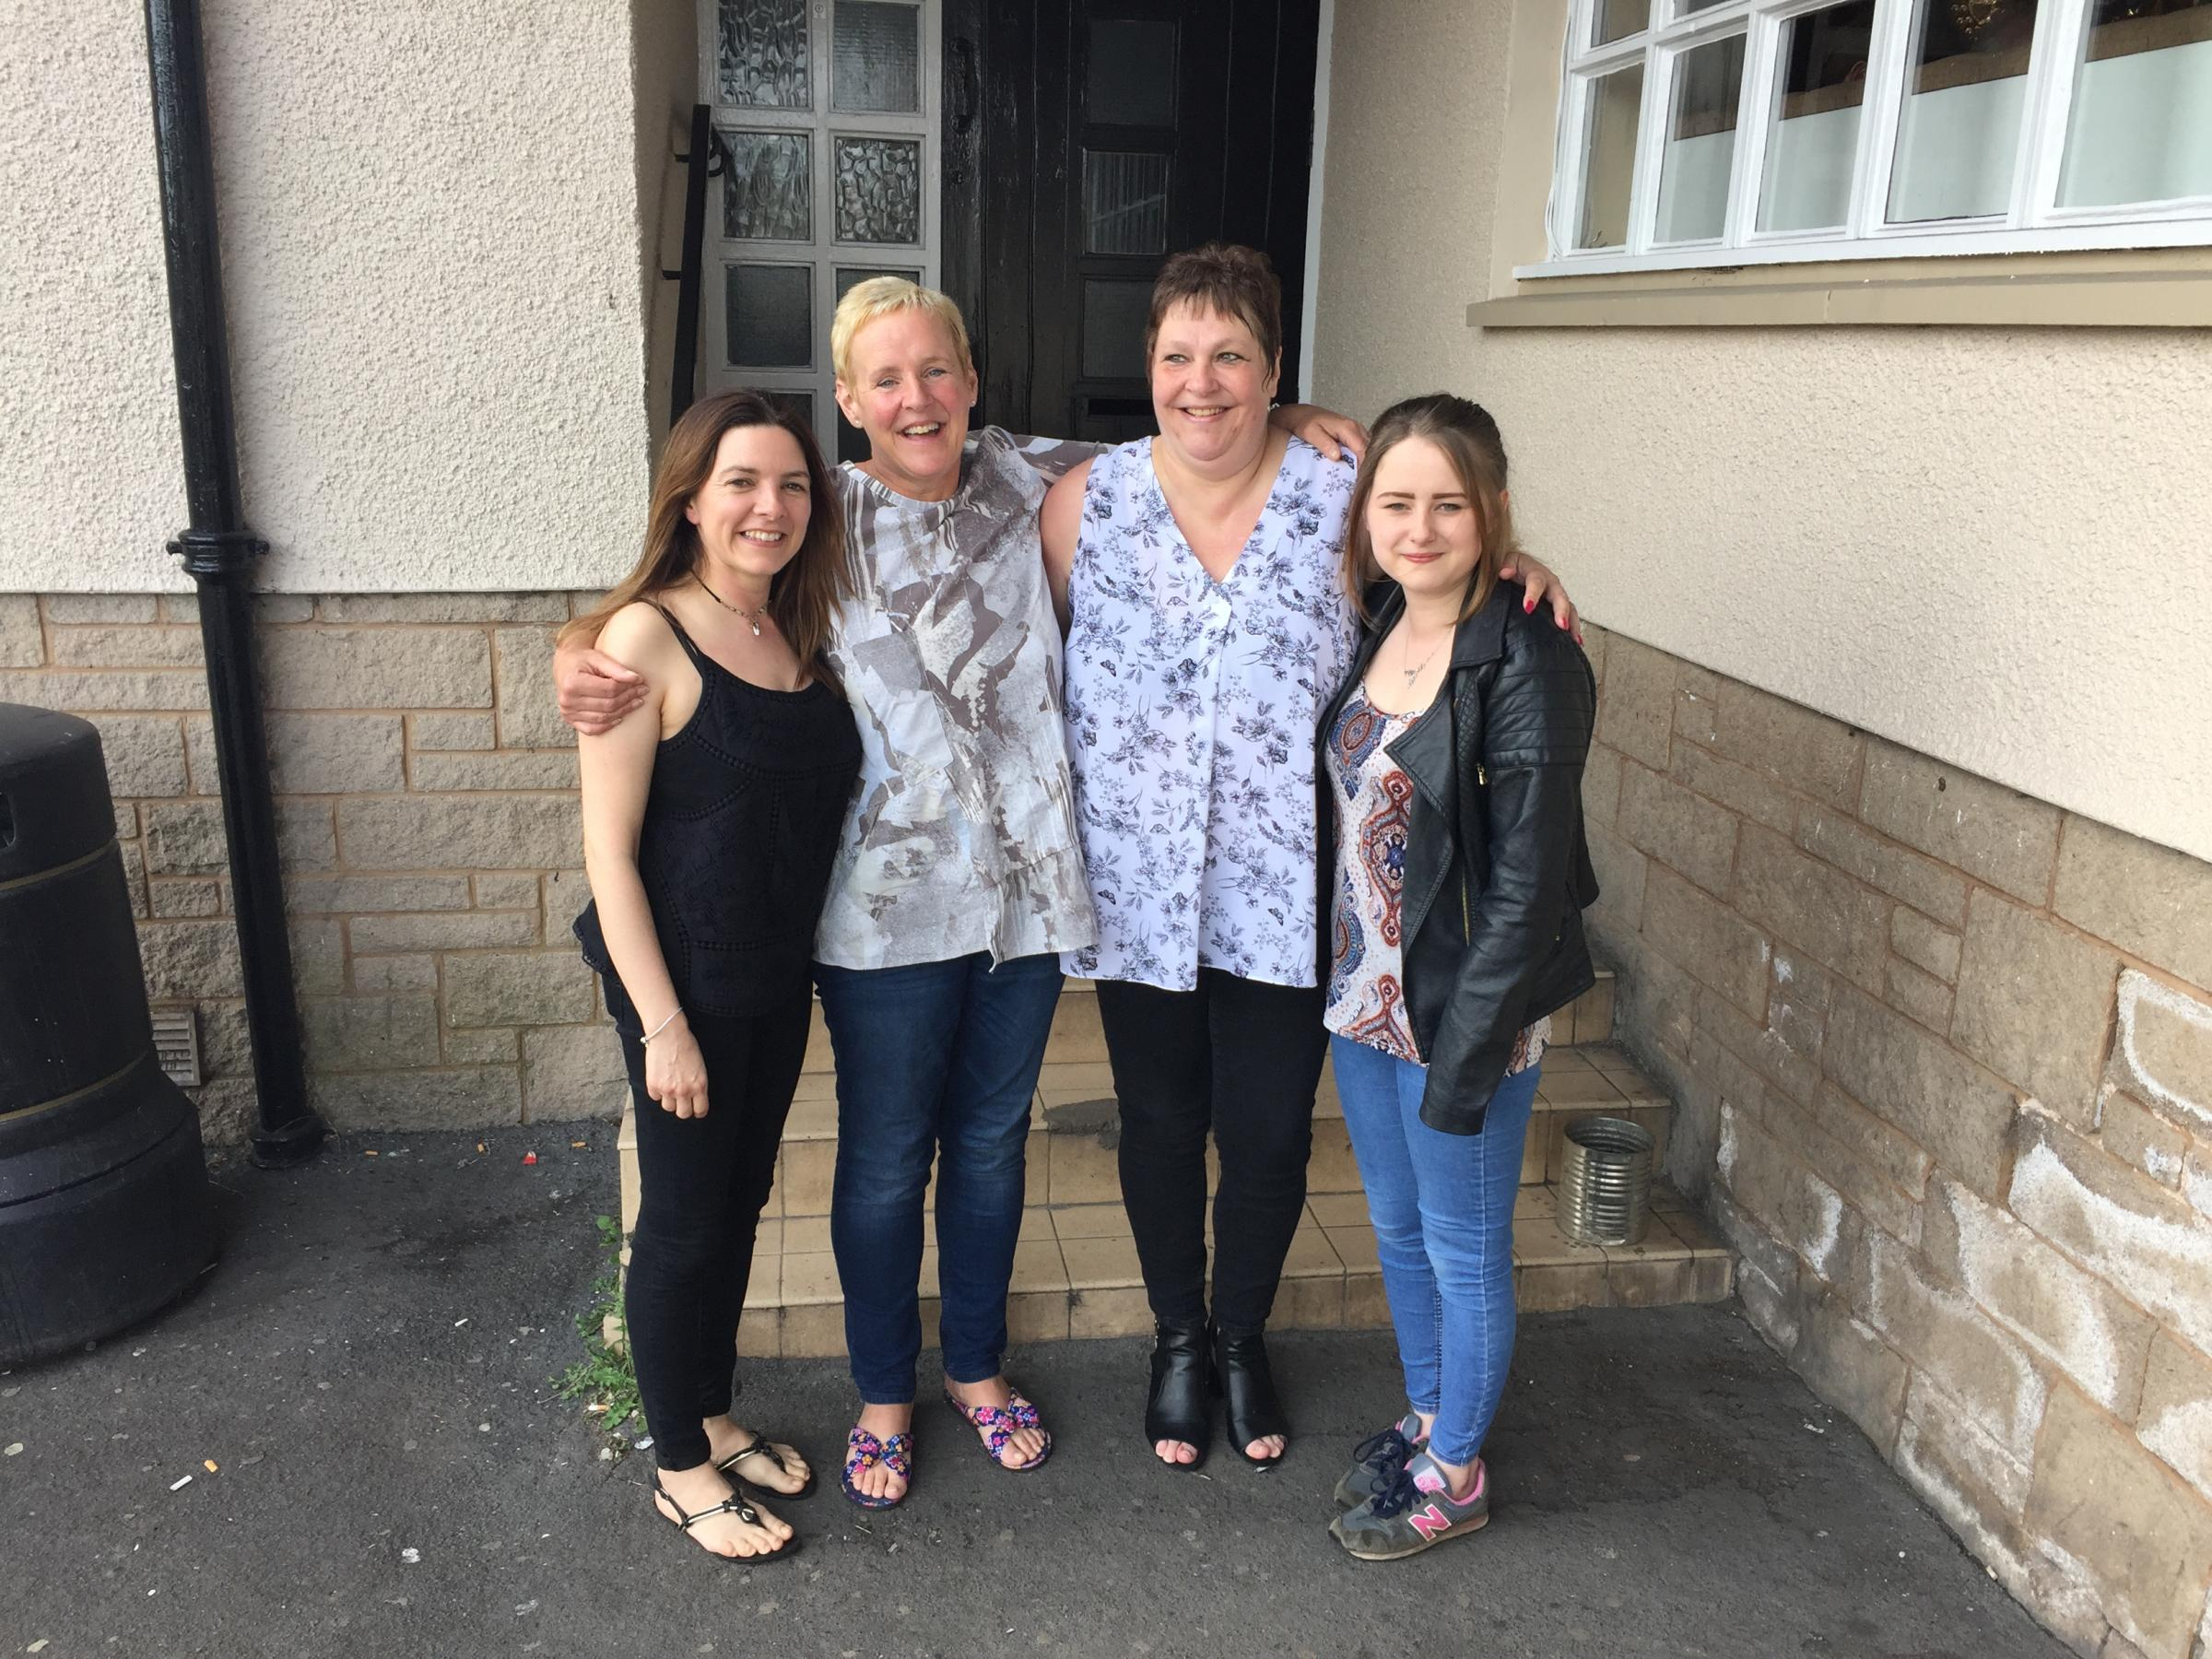 Donna Doogan, Angie Farrell, Elspeth Johnston and Kayleigh Denholm